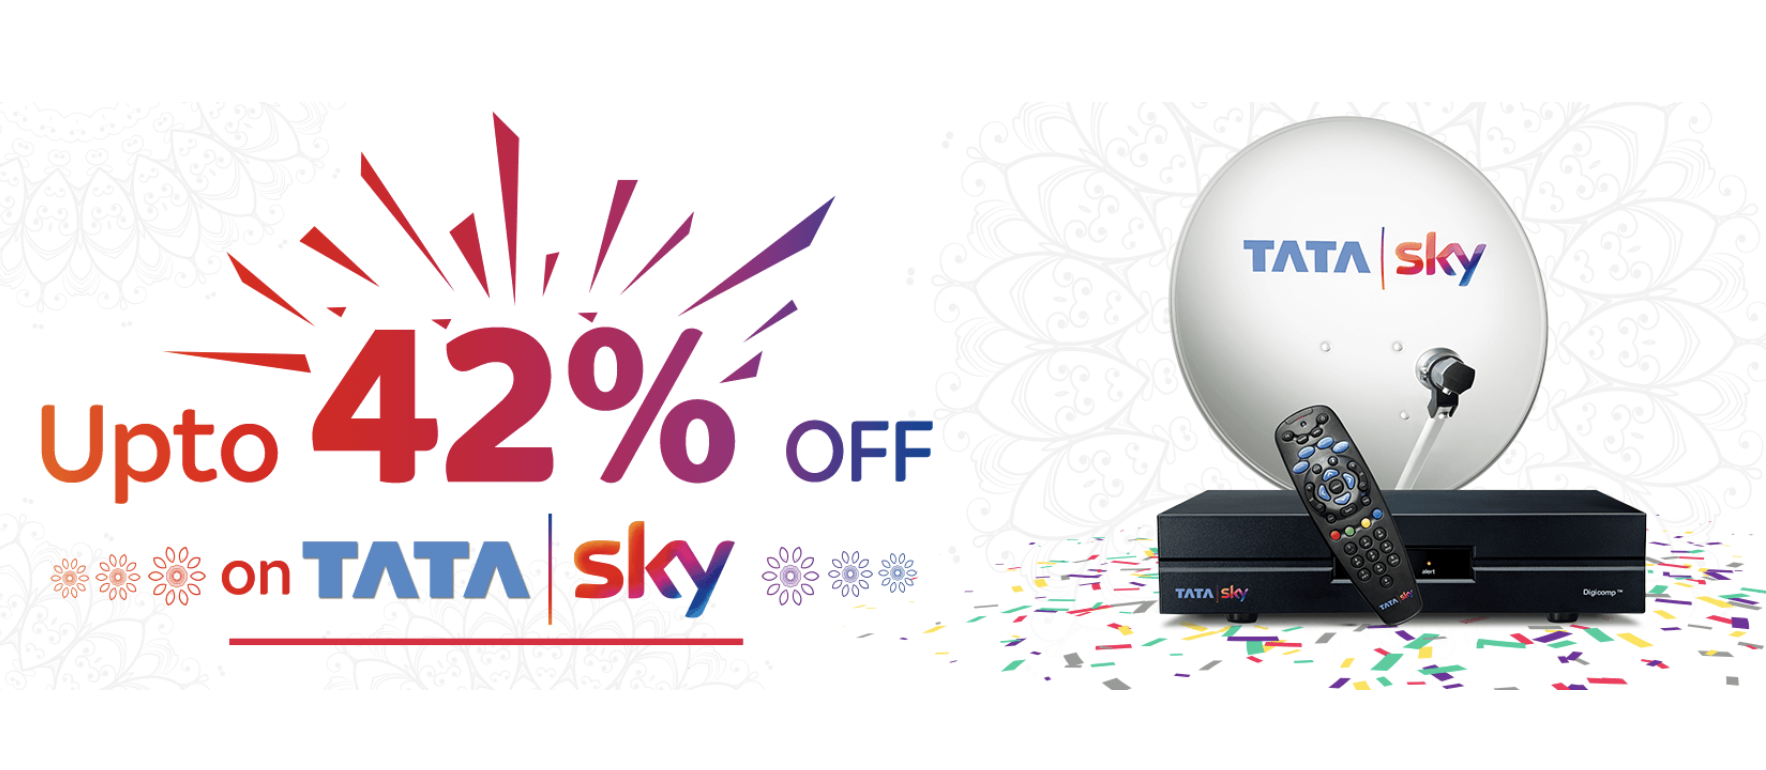 Tata Sky Offers up to 42% Discount to New Users